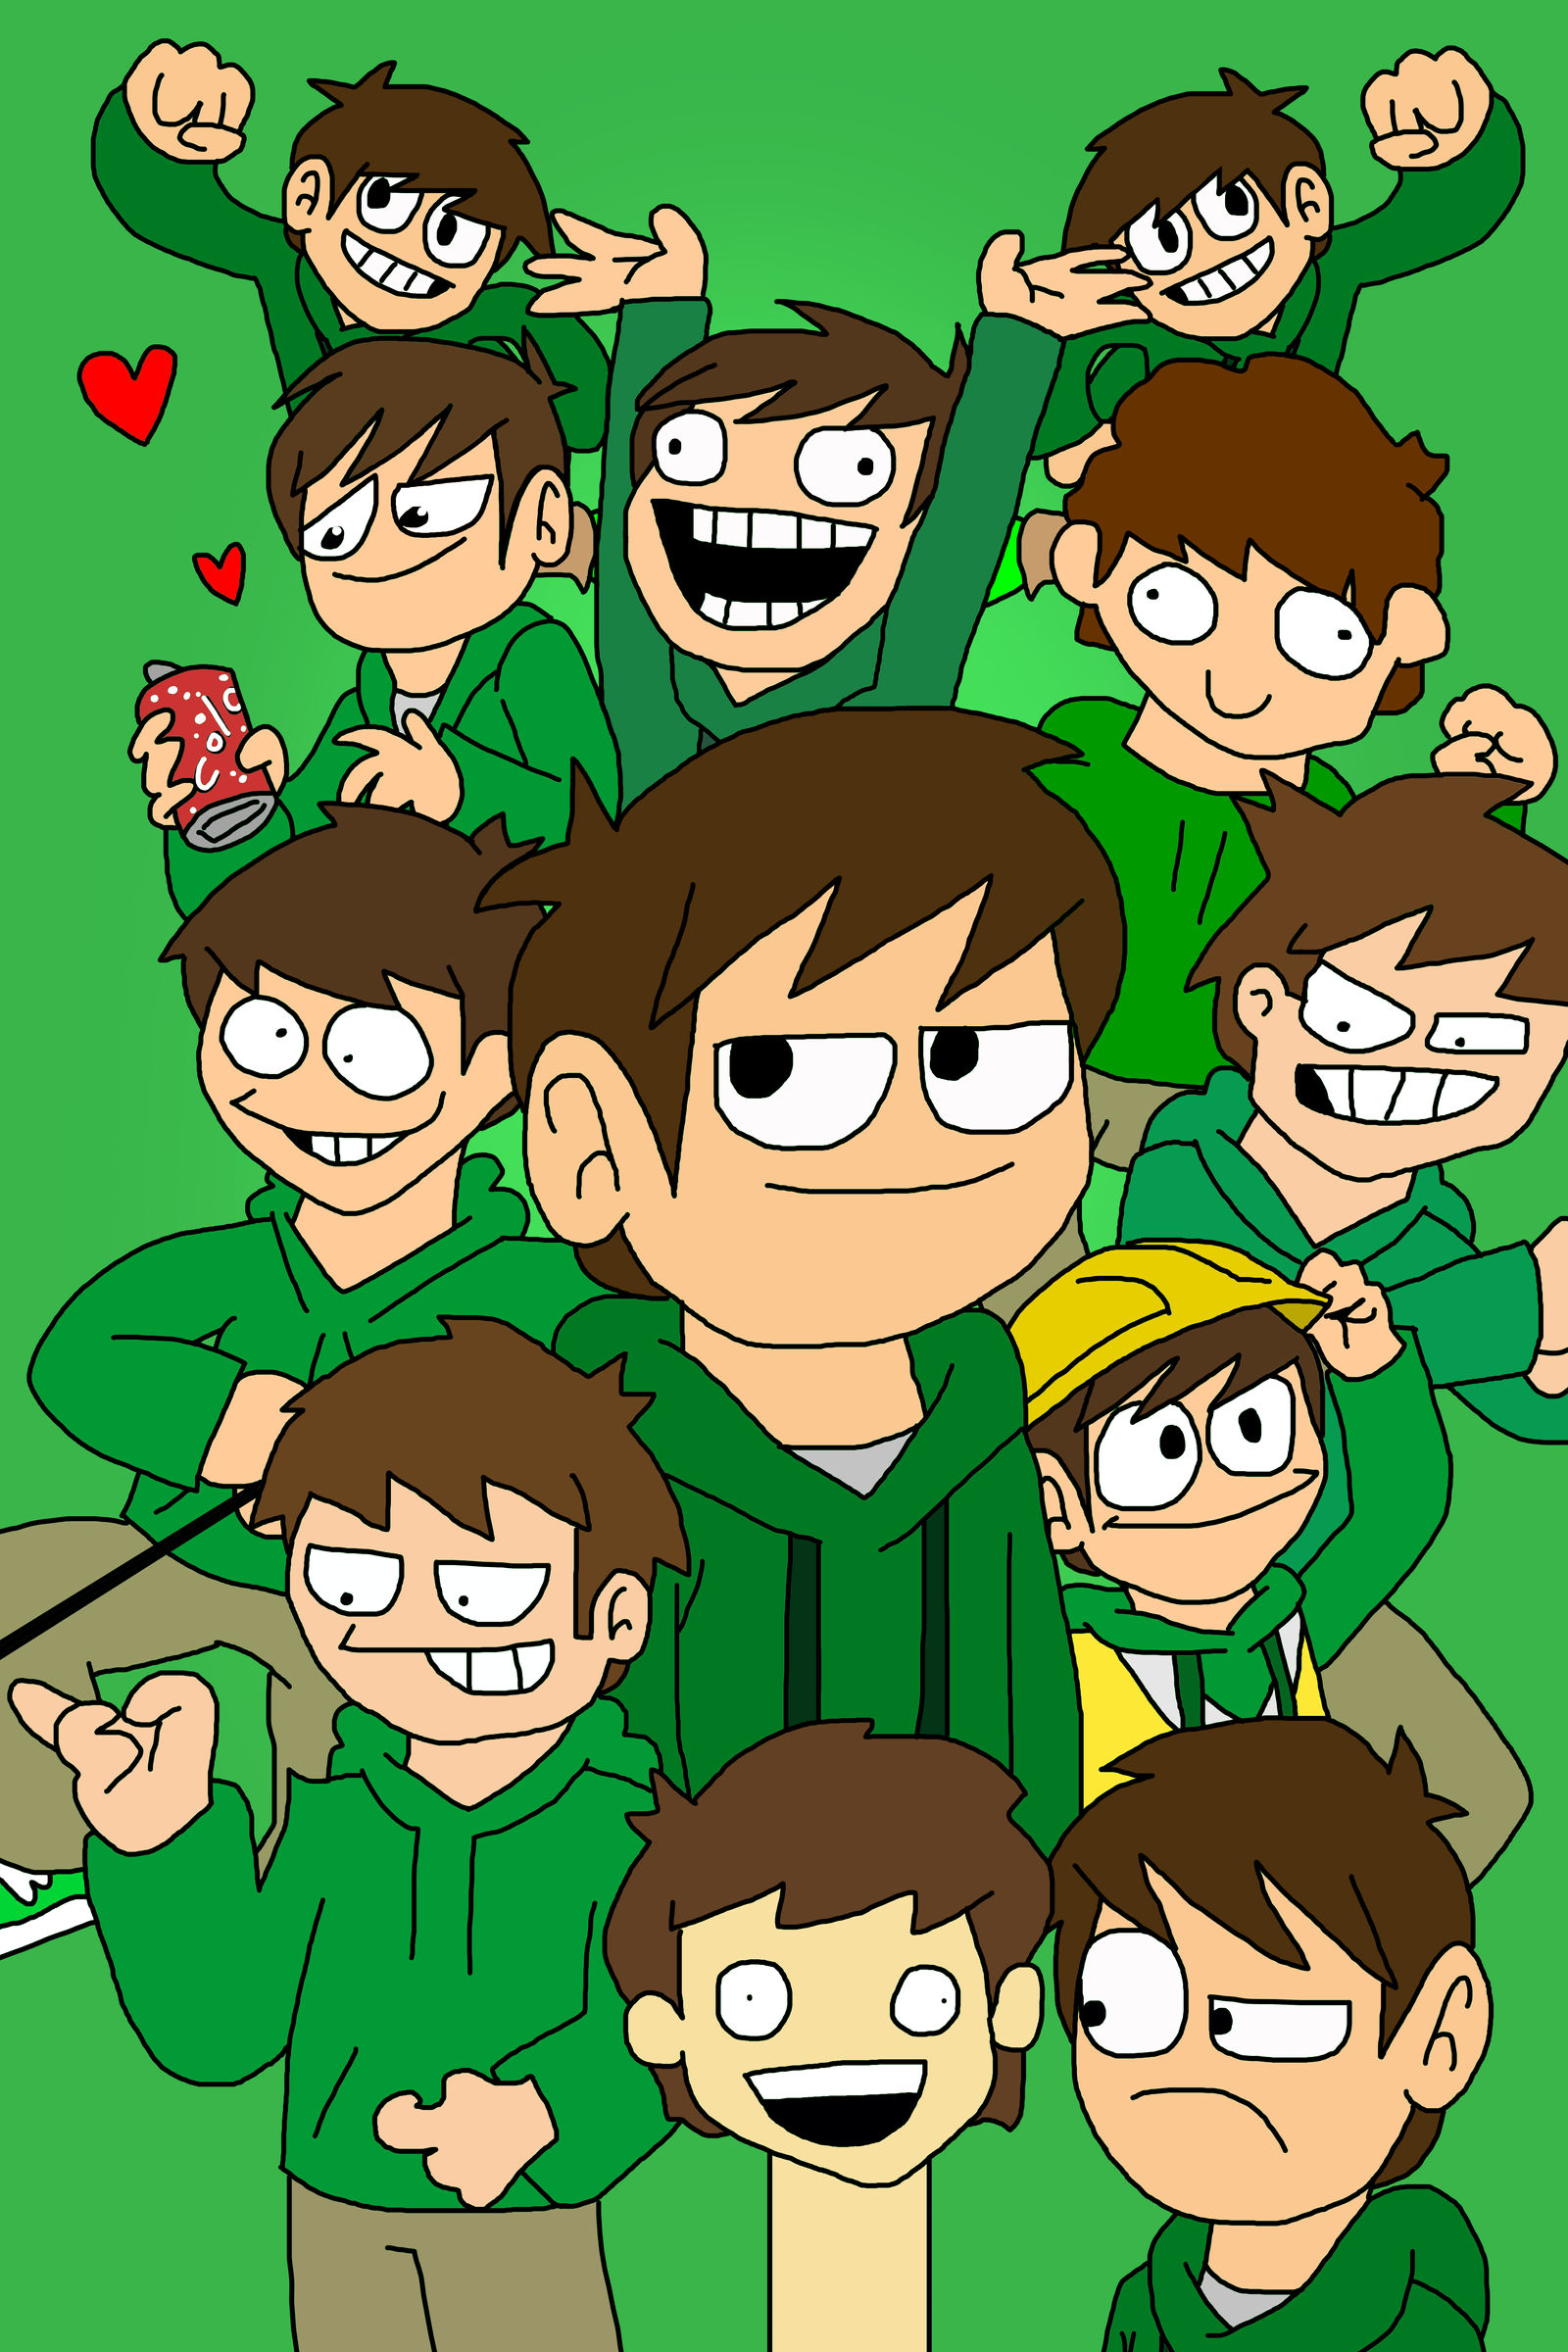 R I P Edd Gould Poster 1988 2012 By Supersmash3ds On Deviantart Animation by edd 'eddsworld' gould (tvclip.biz/user/eddsworld) music: r i p edd gould poster 1988 2012